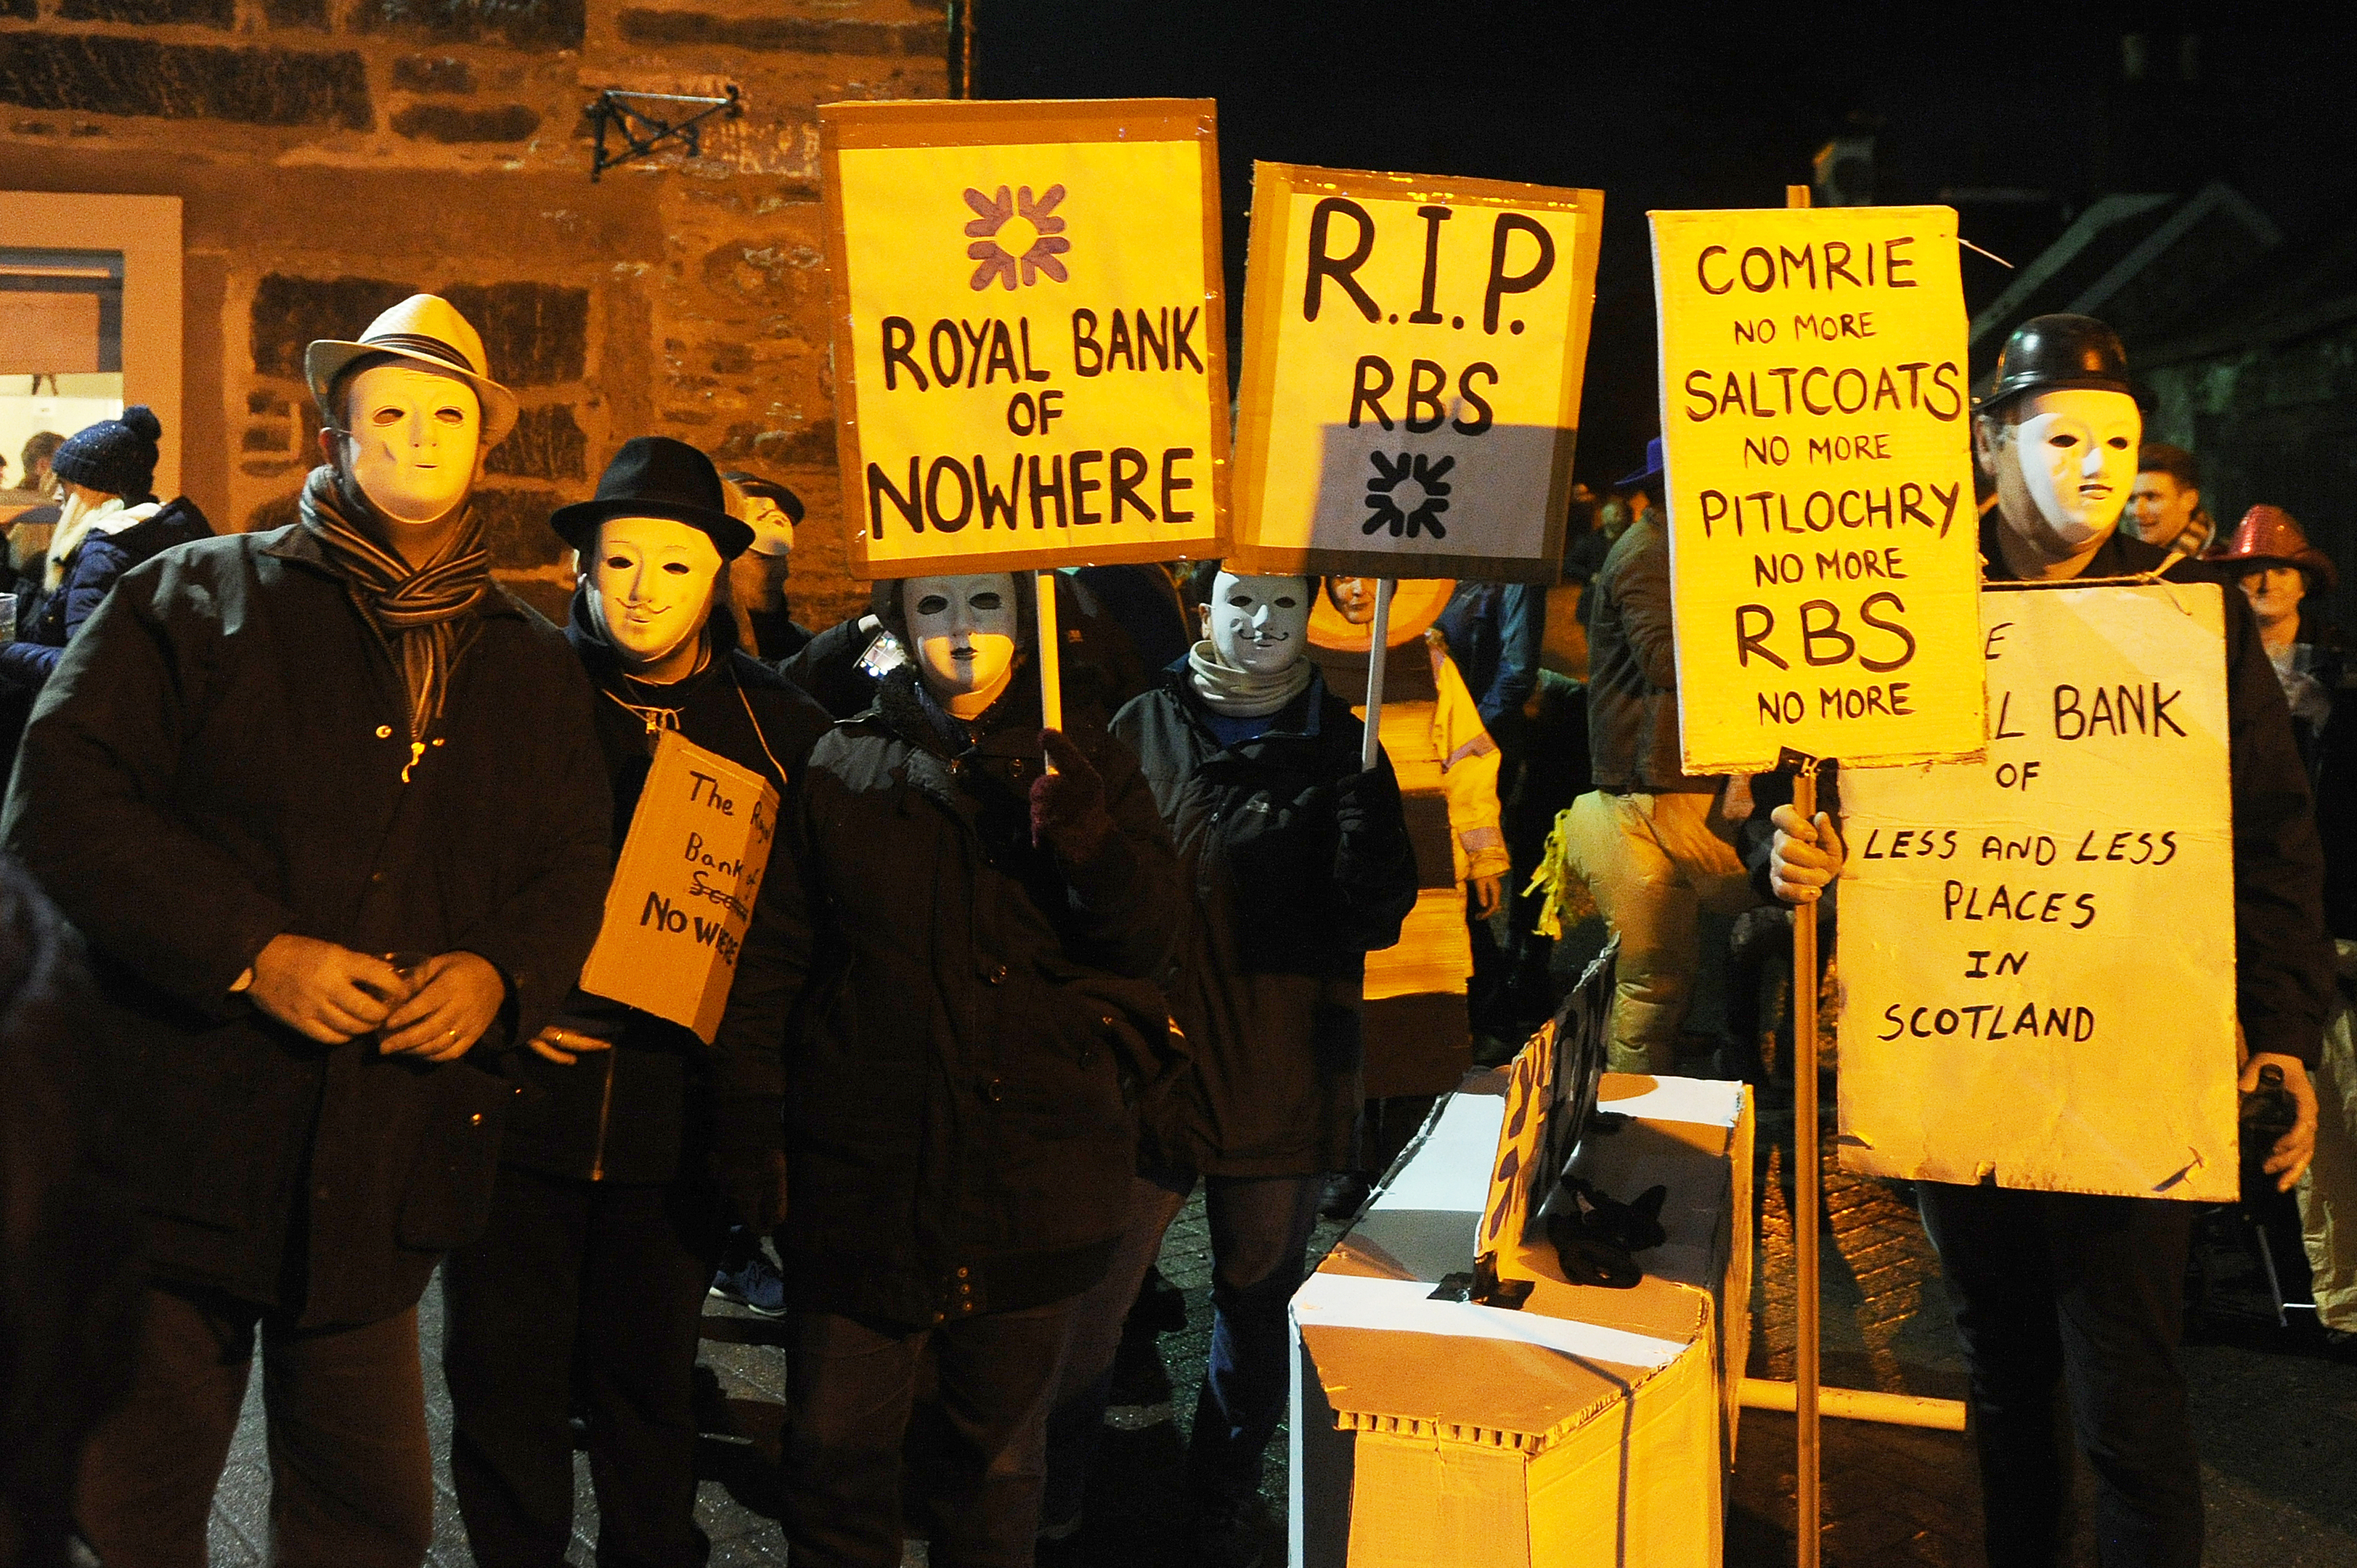 Locals in fancy dress staged a demonstration against RBS closures at the Flambeaux celebrations in Comrie at Hogmanay.